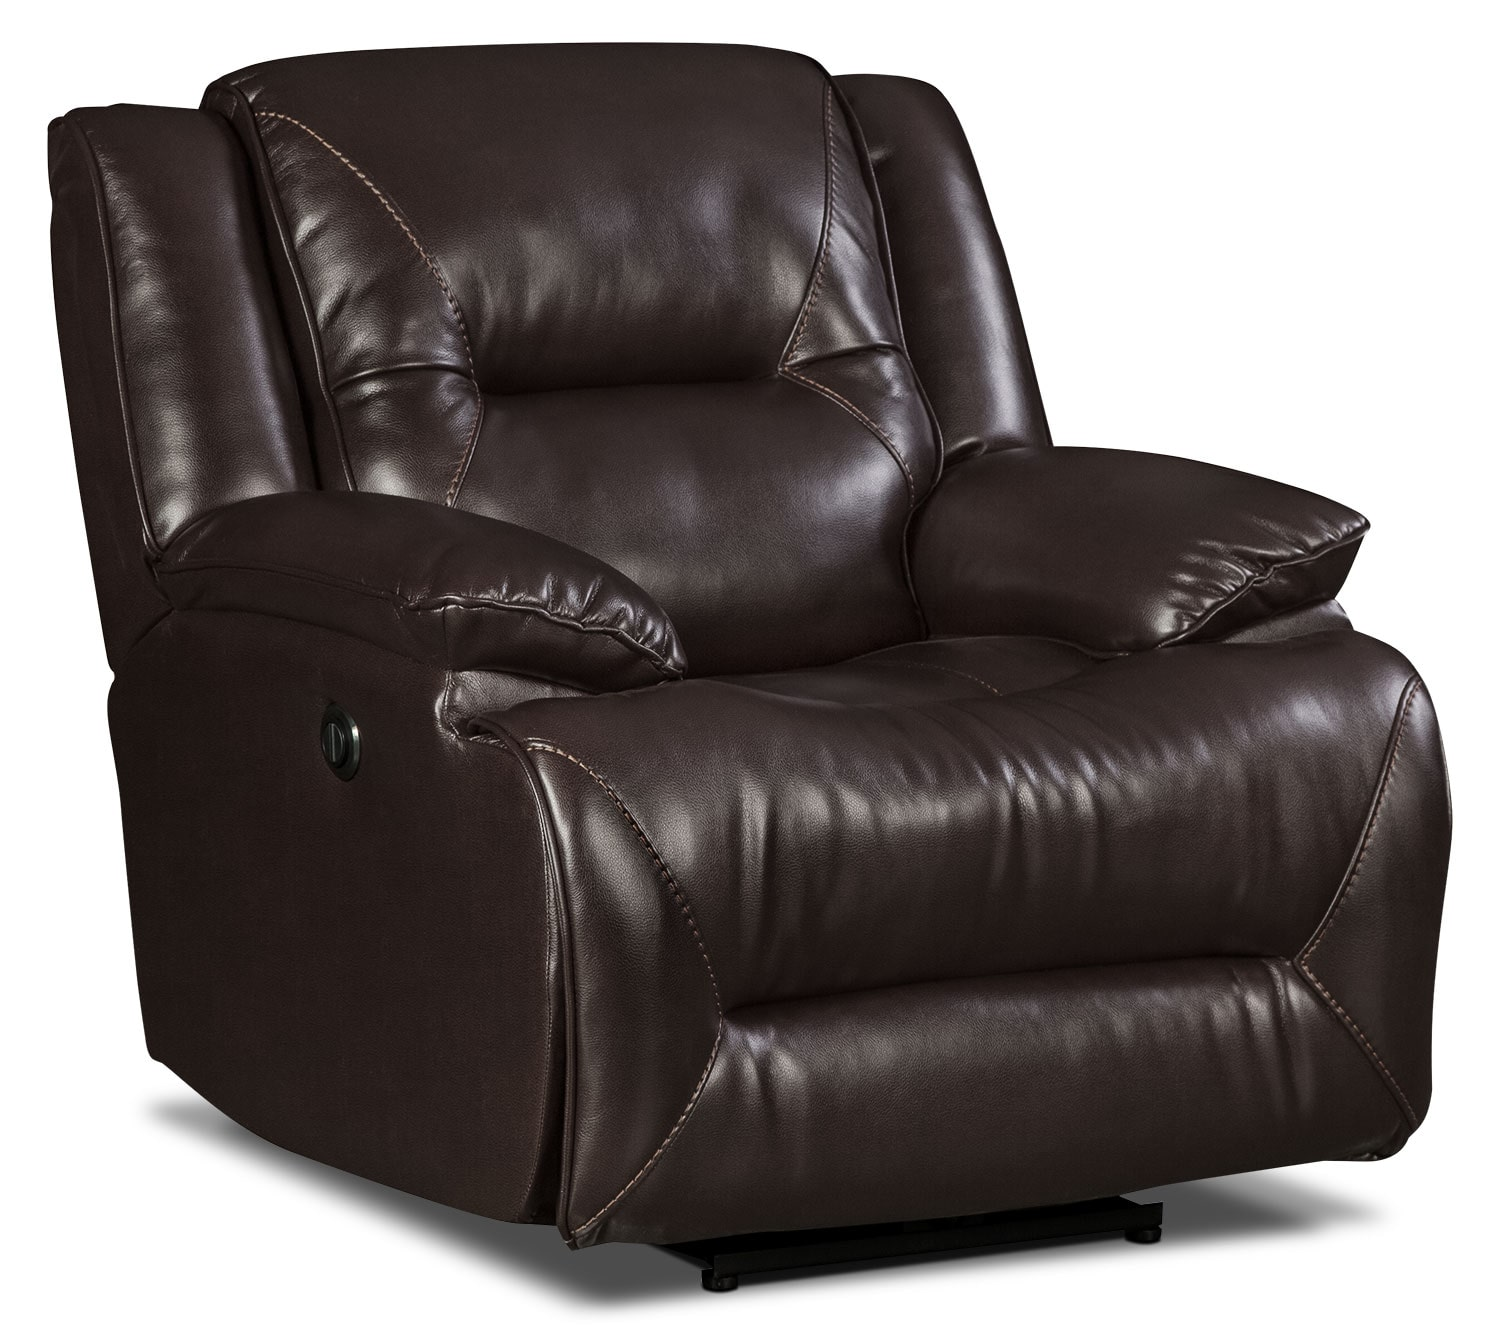 leather fabric chair lancer leather look fabric power reclining chair brown 16627 | 450858